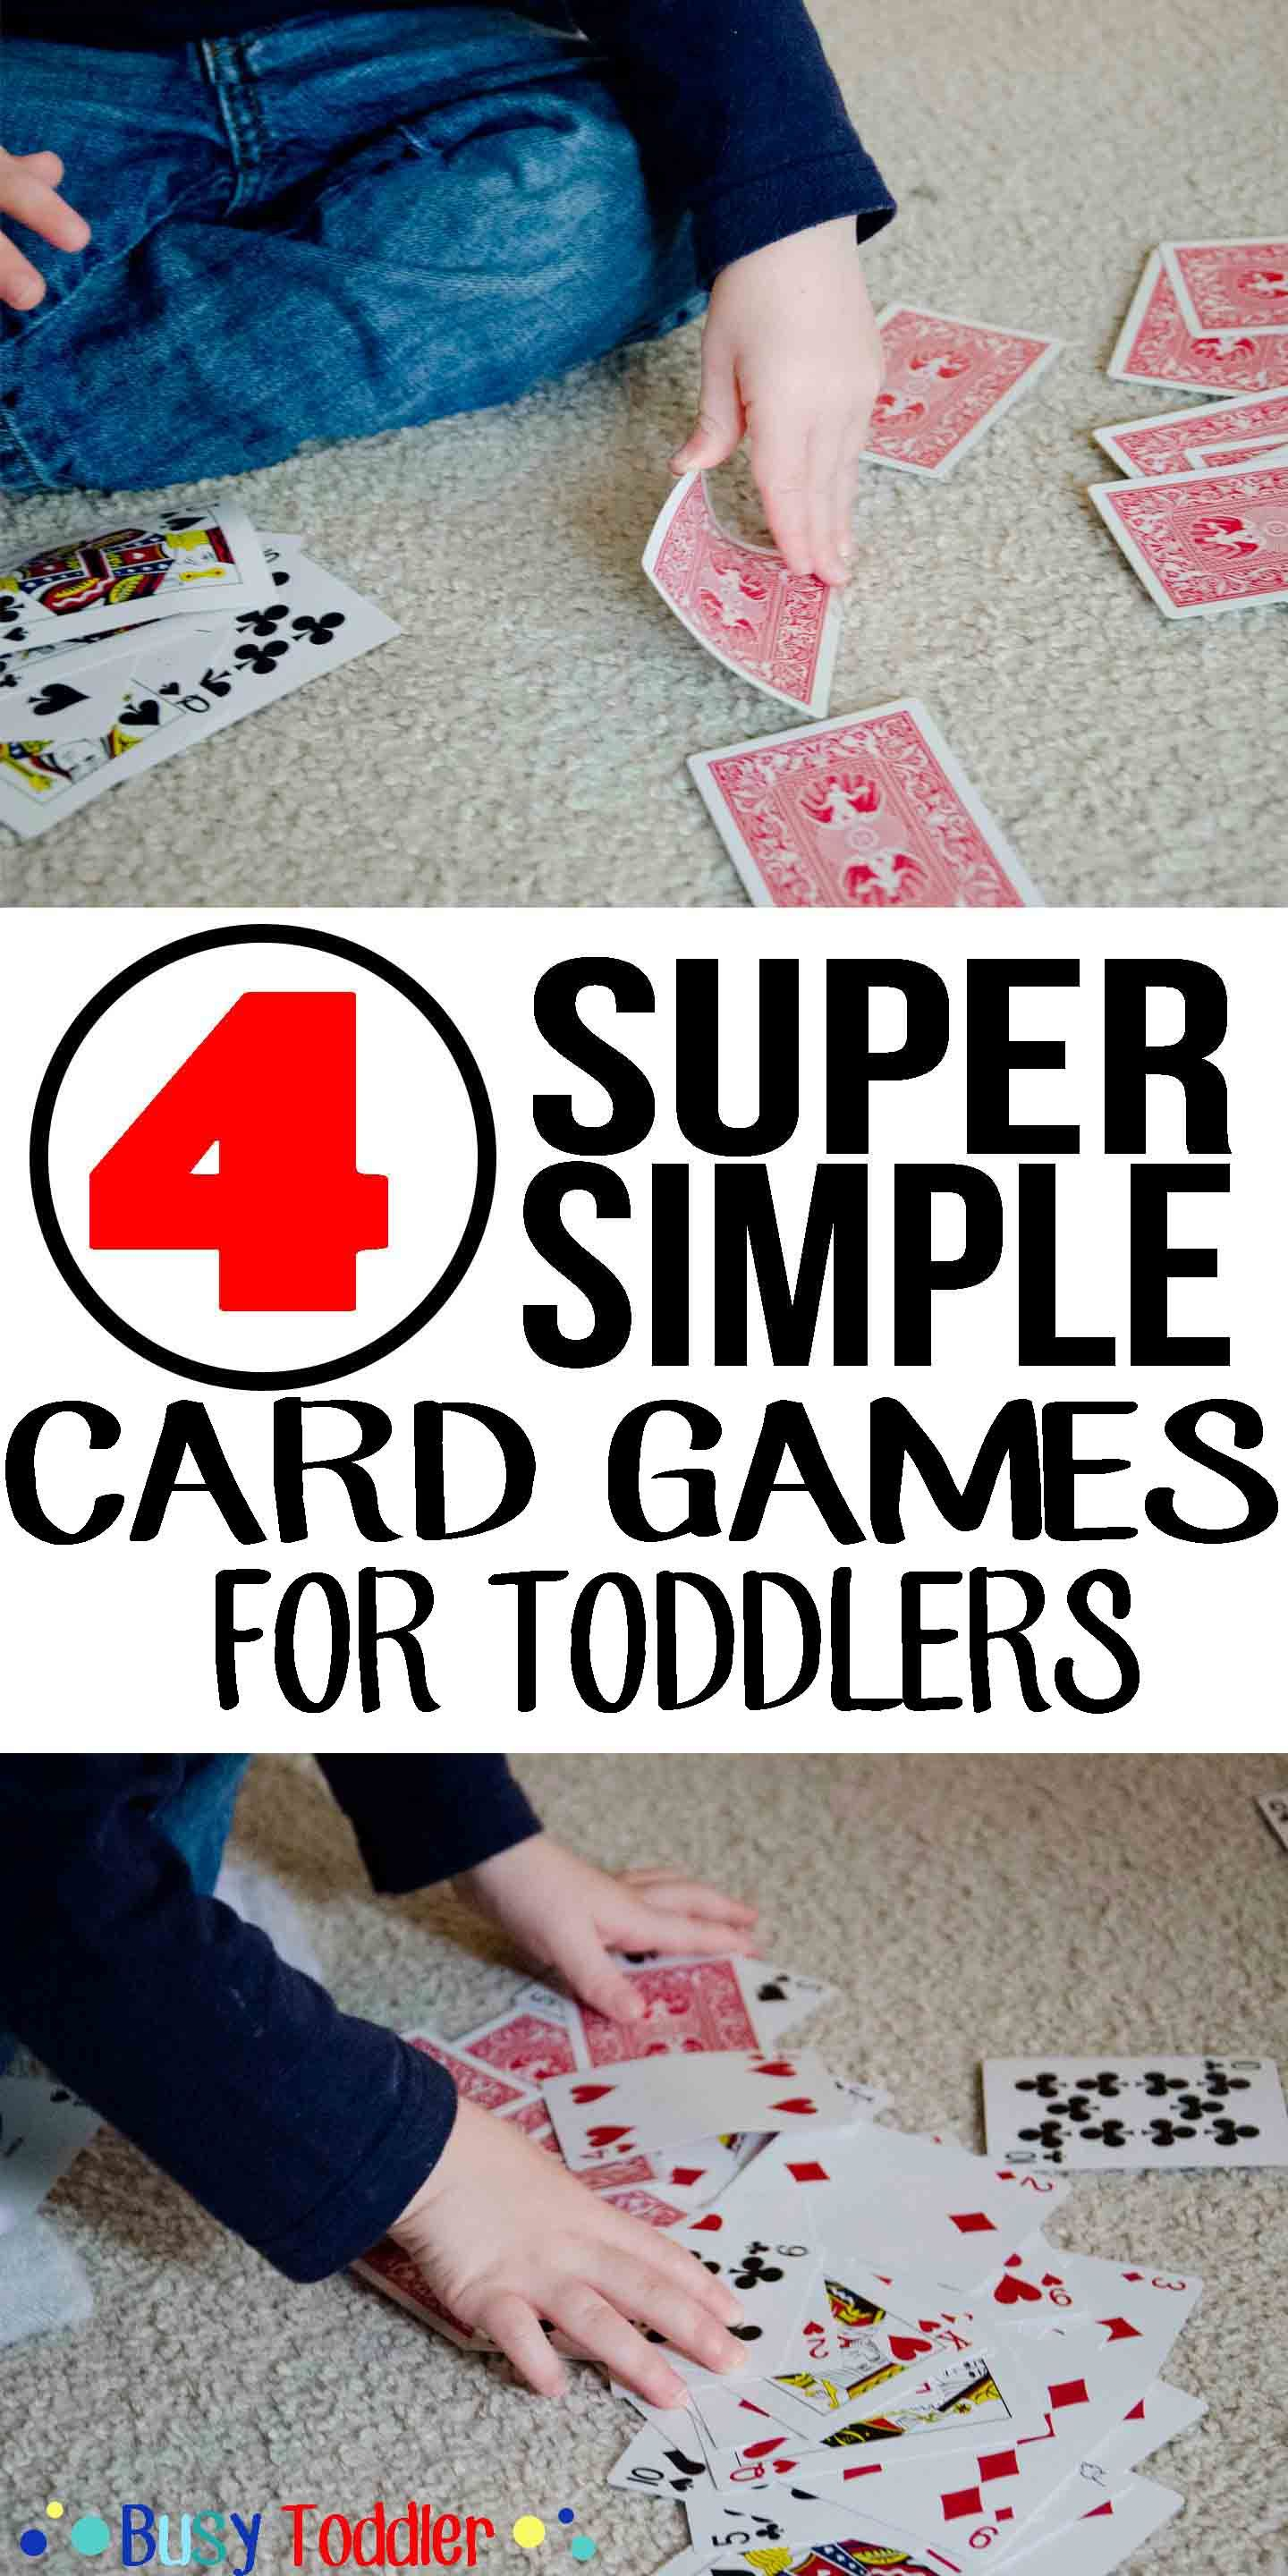 4 Simple Card Games Card games for kids, Family card